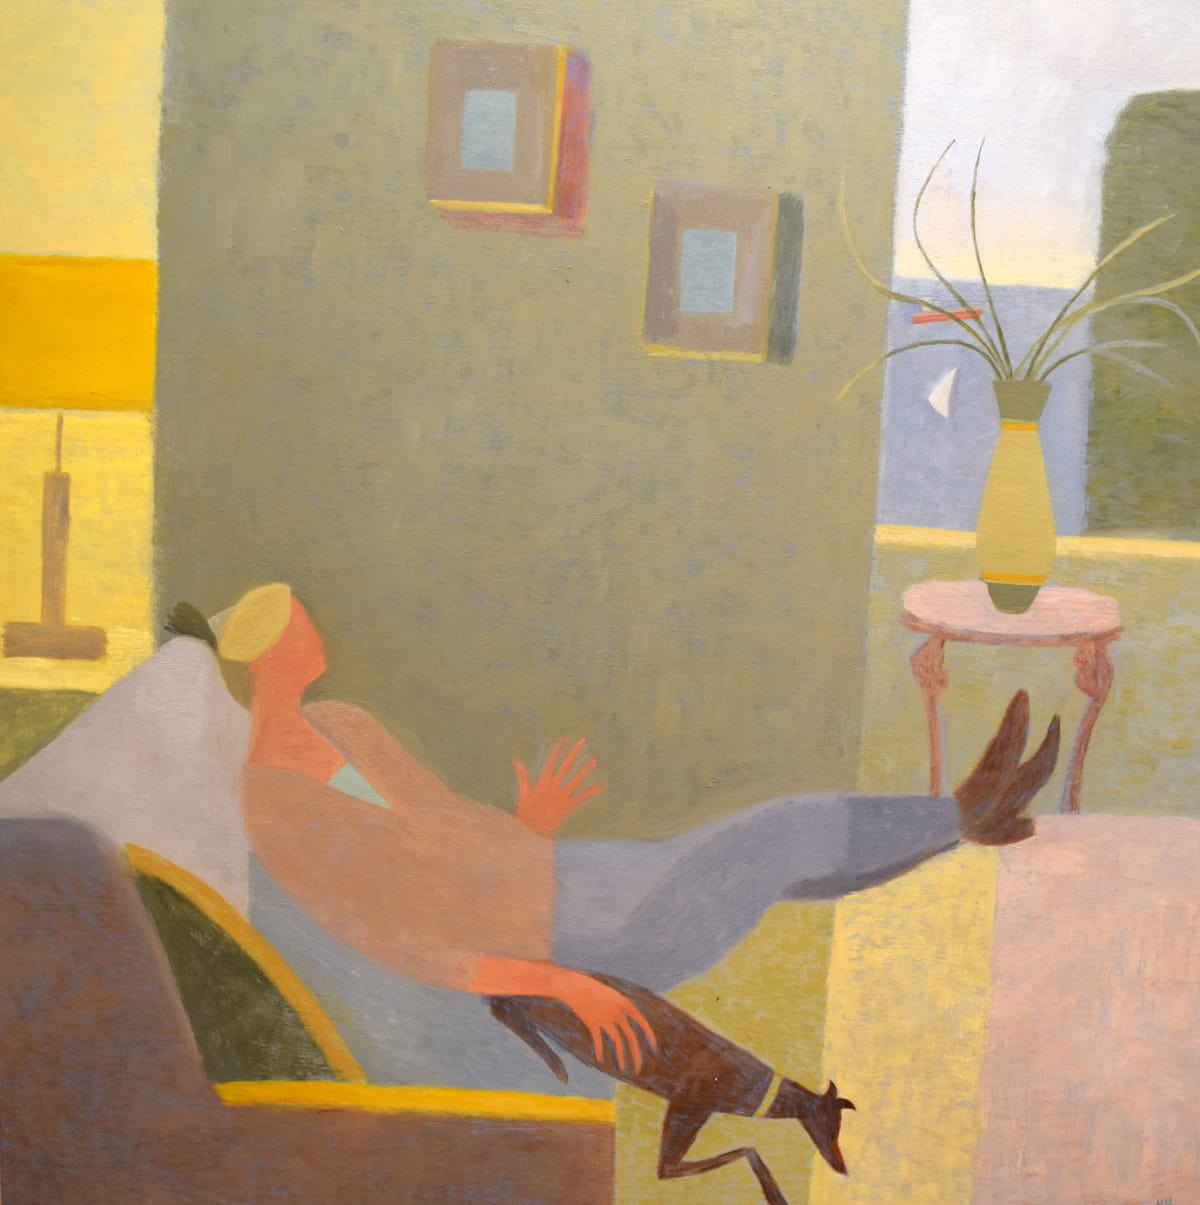 Mary Mabbutt, Another Afternoon in Falmouth, 2014